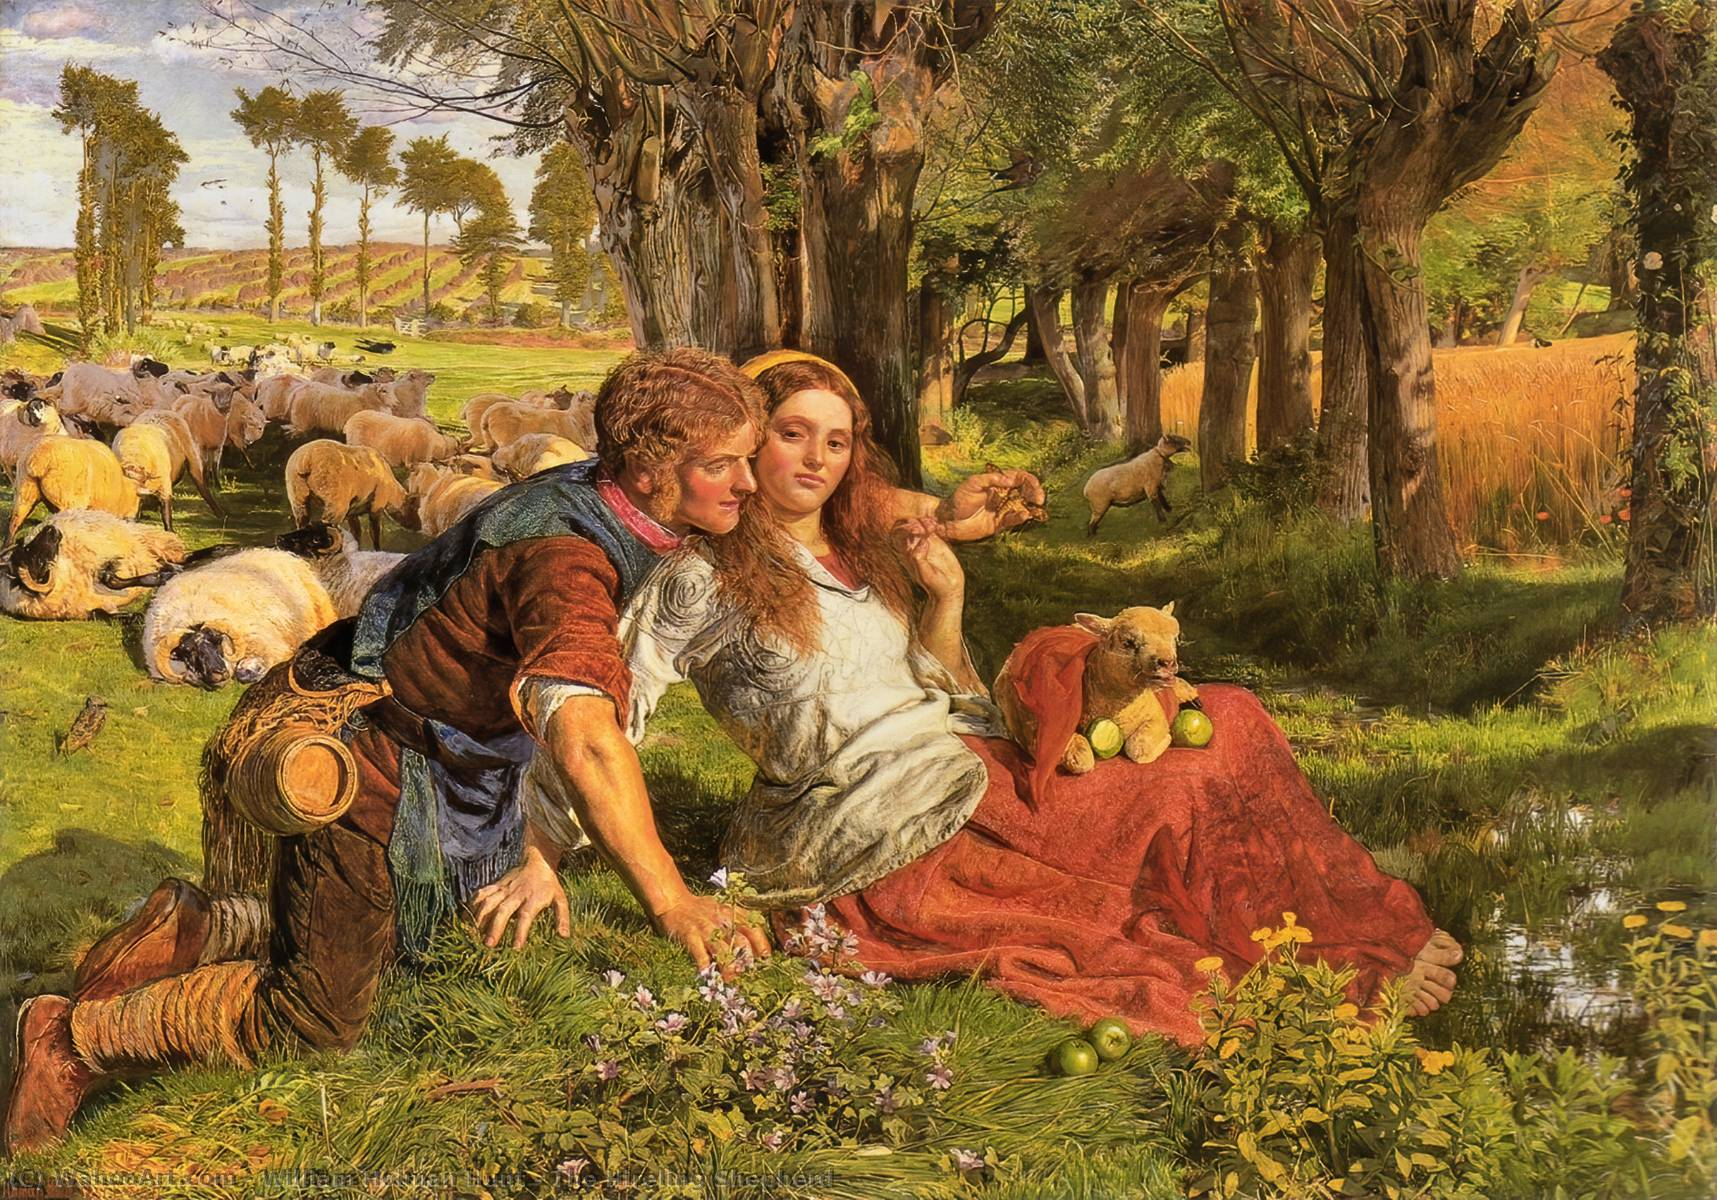 Achat Reproductions D'œuvres D'art | Le mercenaire Shepherd de William Holman Hunt | Most-Famous-Paintings.com